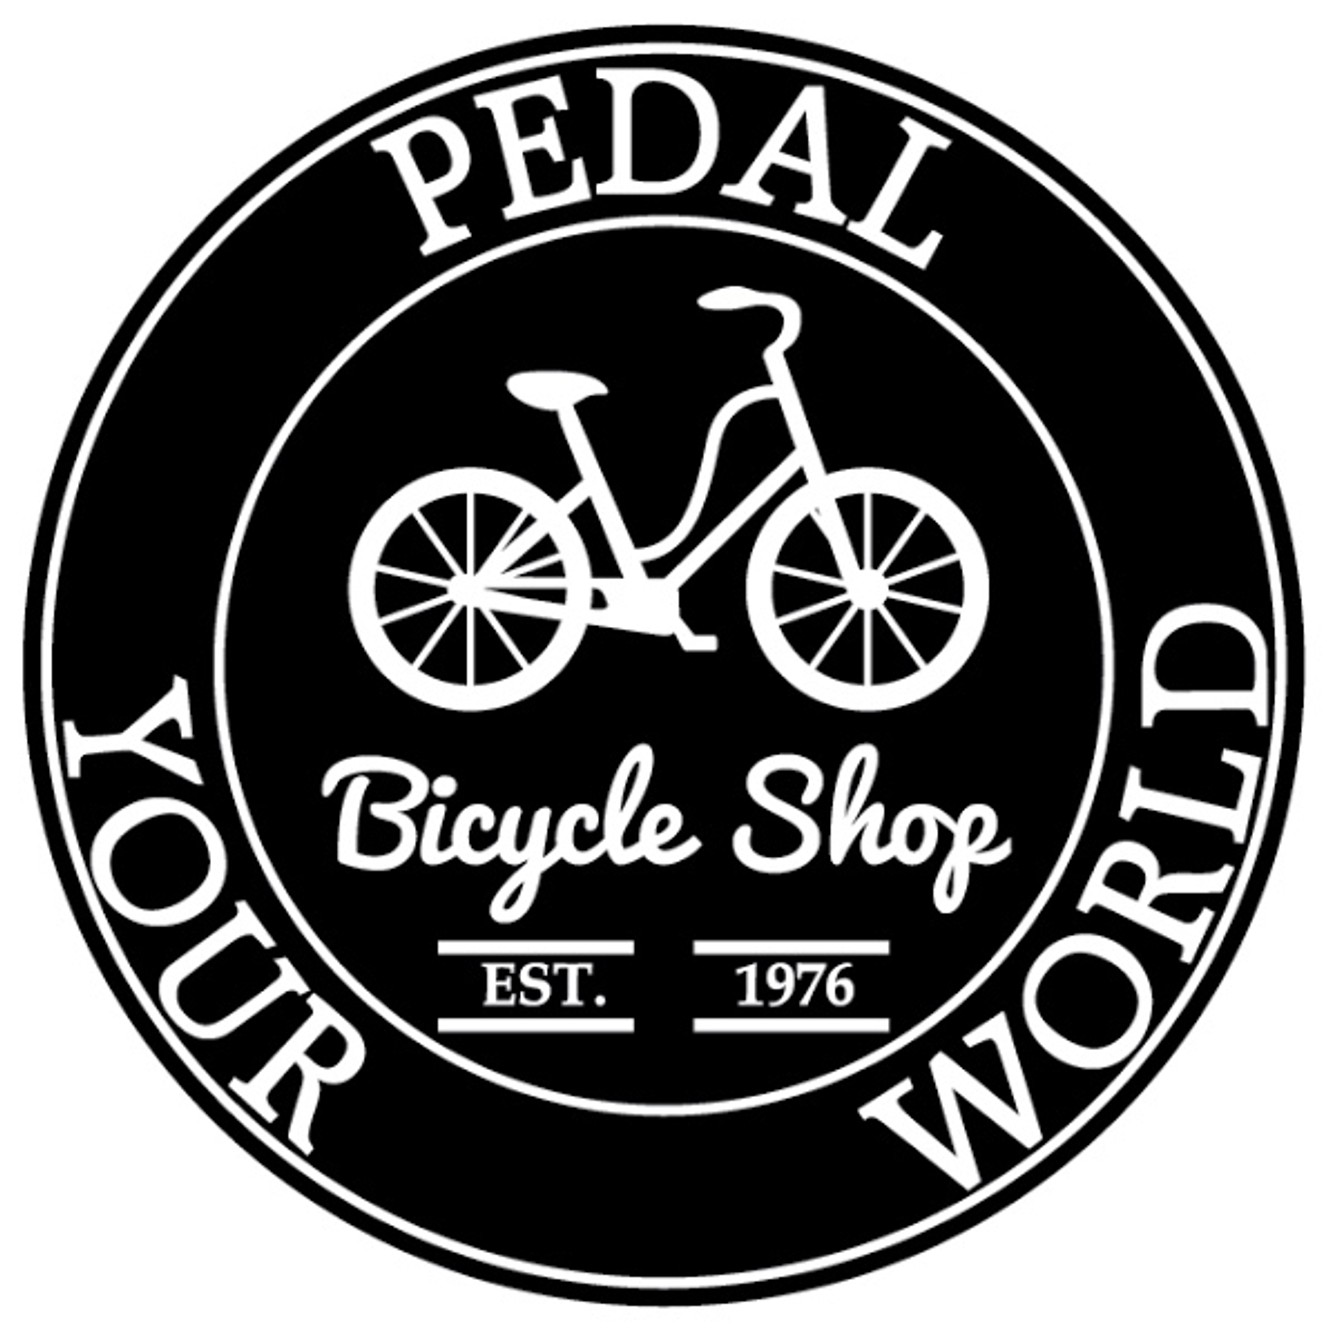 Pedal Your World logo